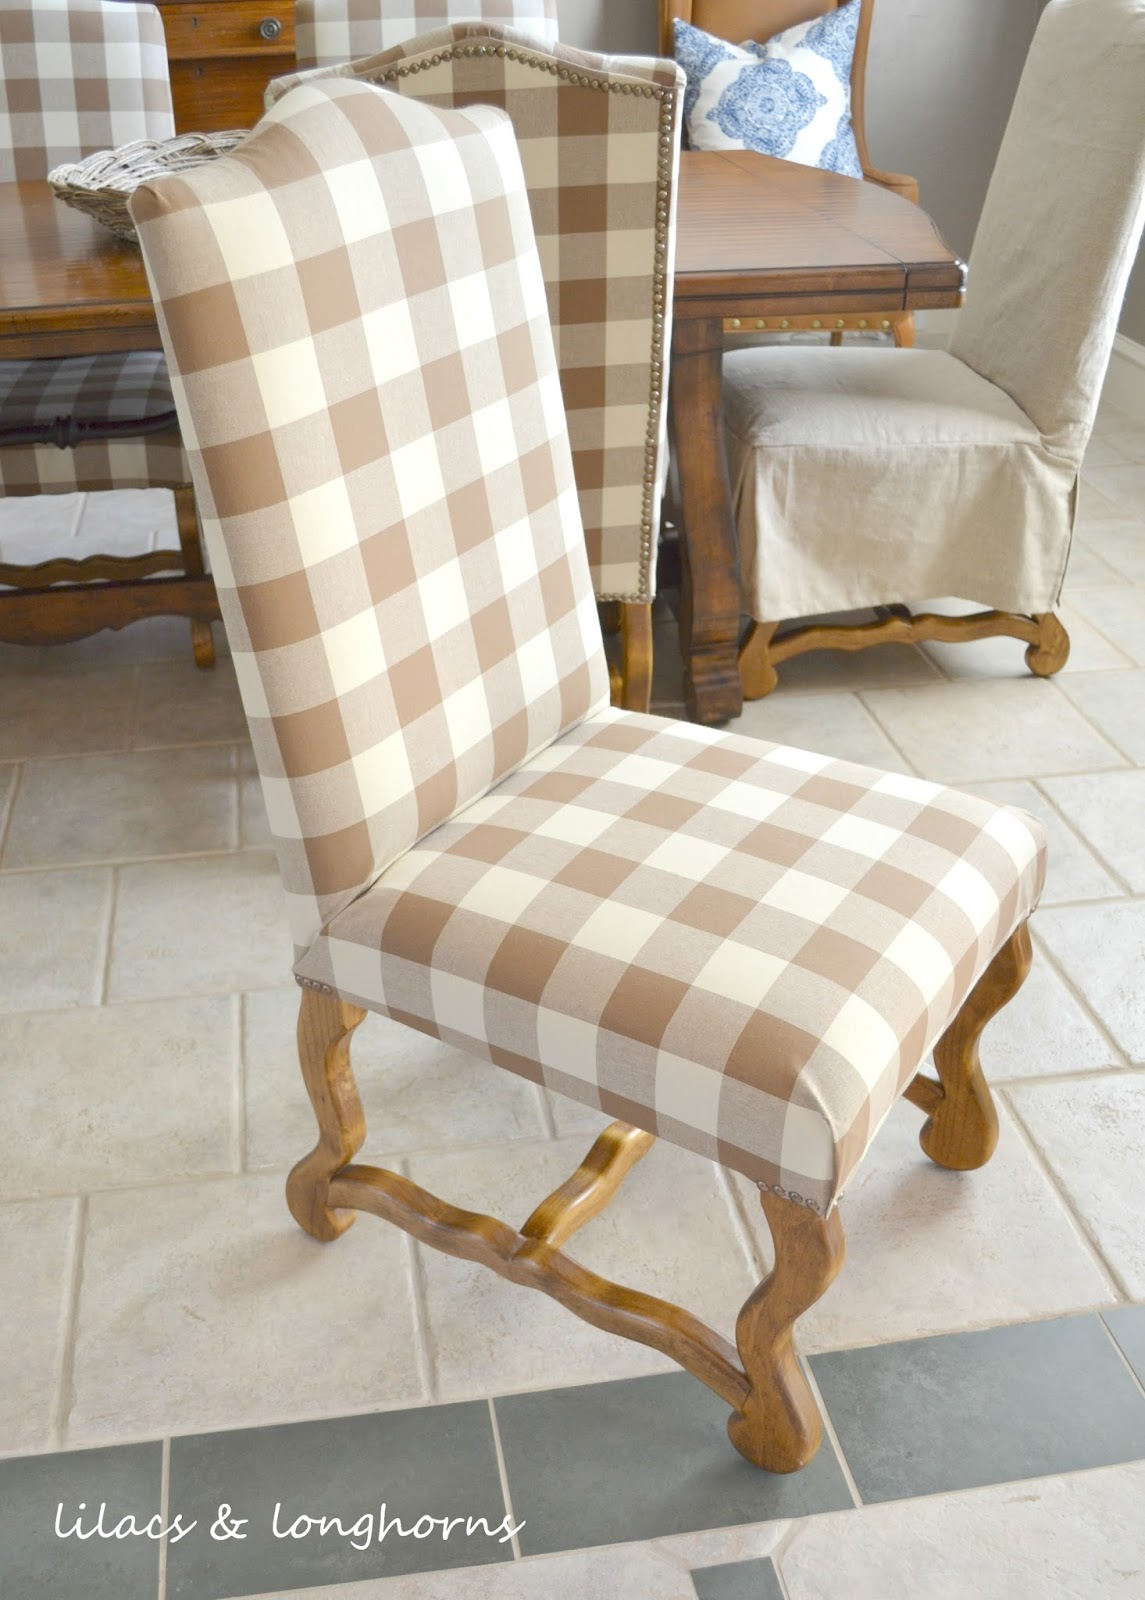 Buffalo Plaid Chair Craftsman Style Chairs Check Dining Room Ideas